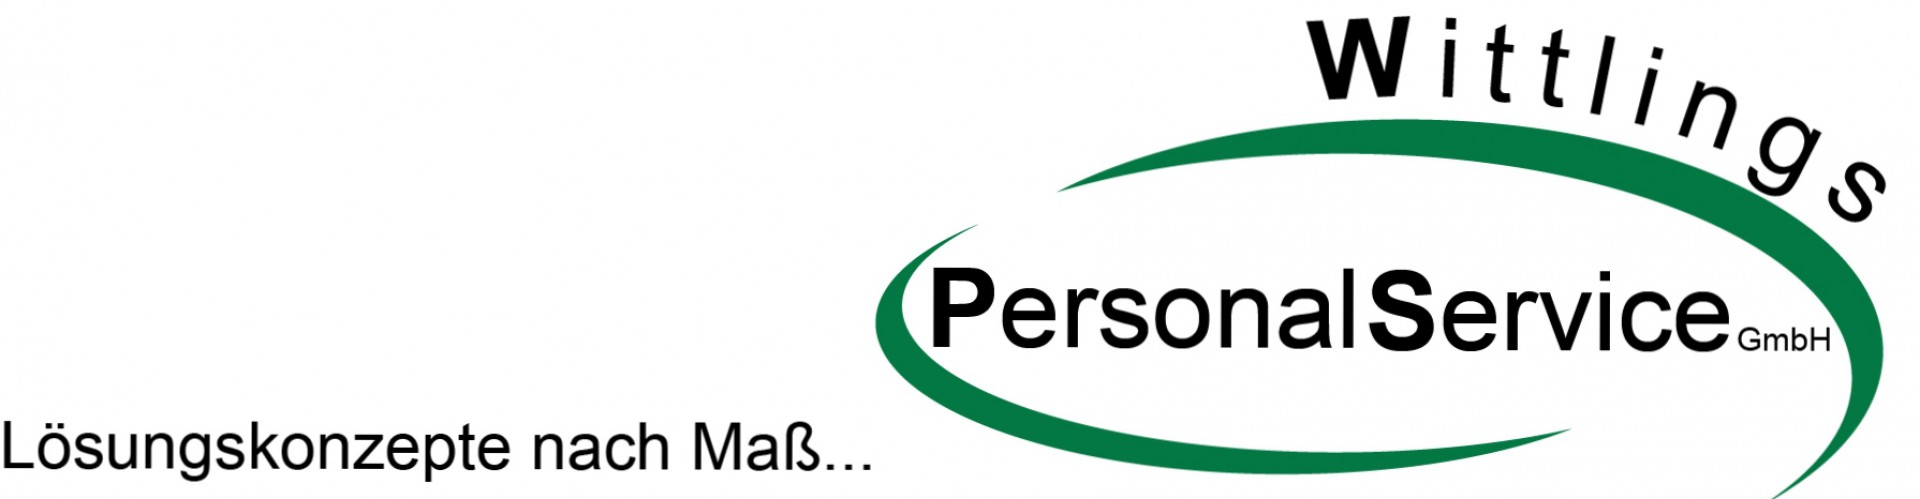 Wittlings PersonalService GmbH